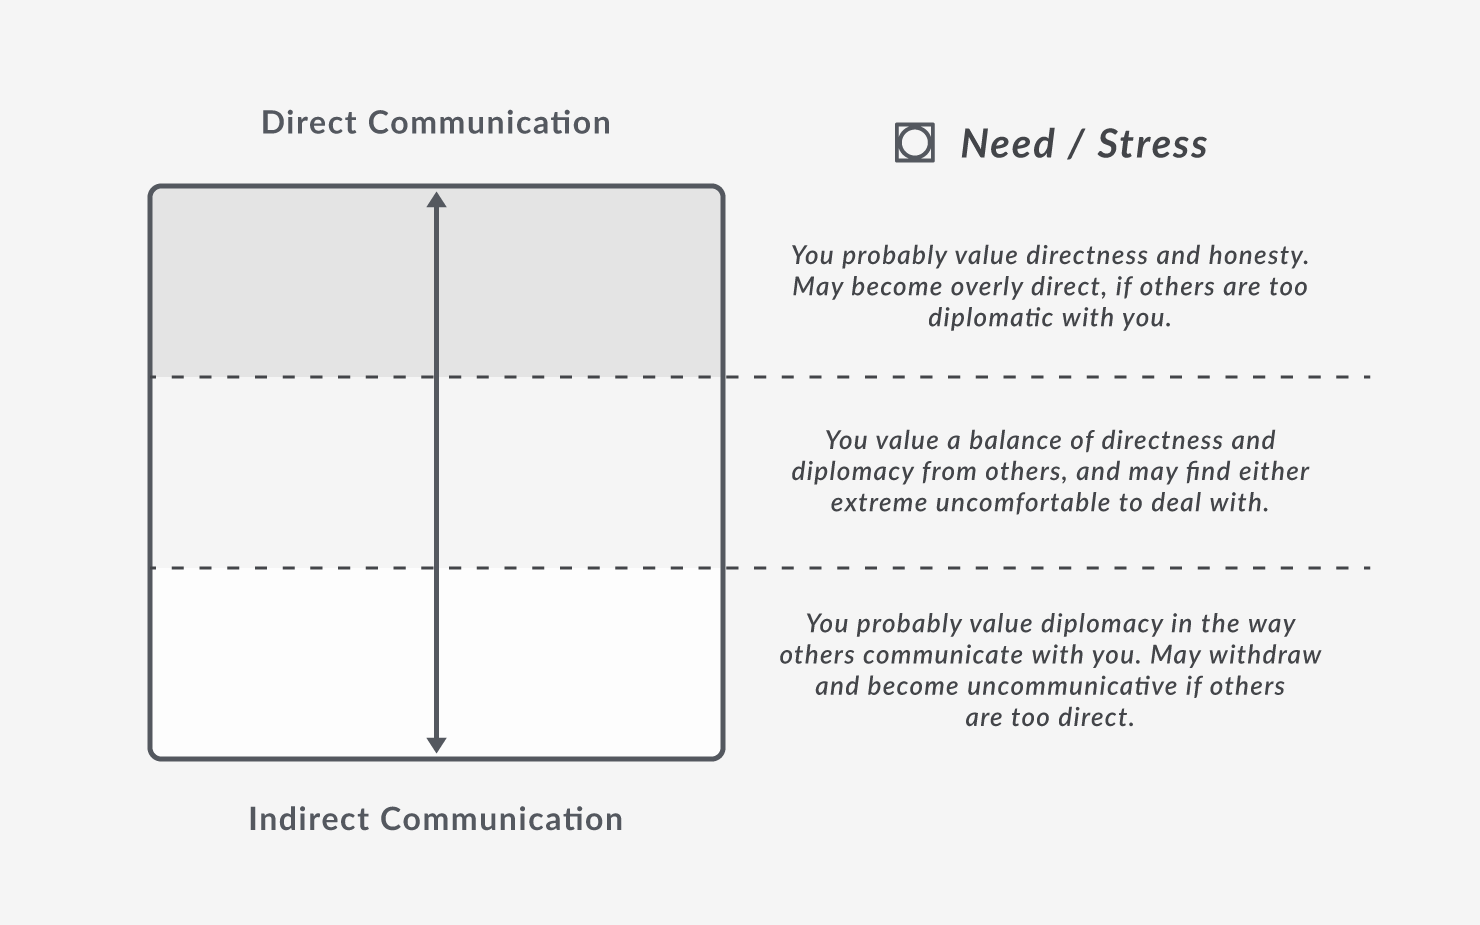 Vertical Axis: Need & Stress